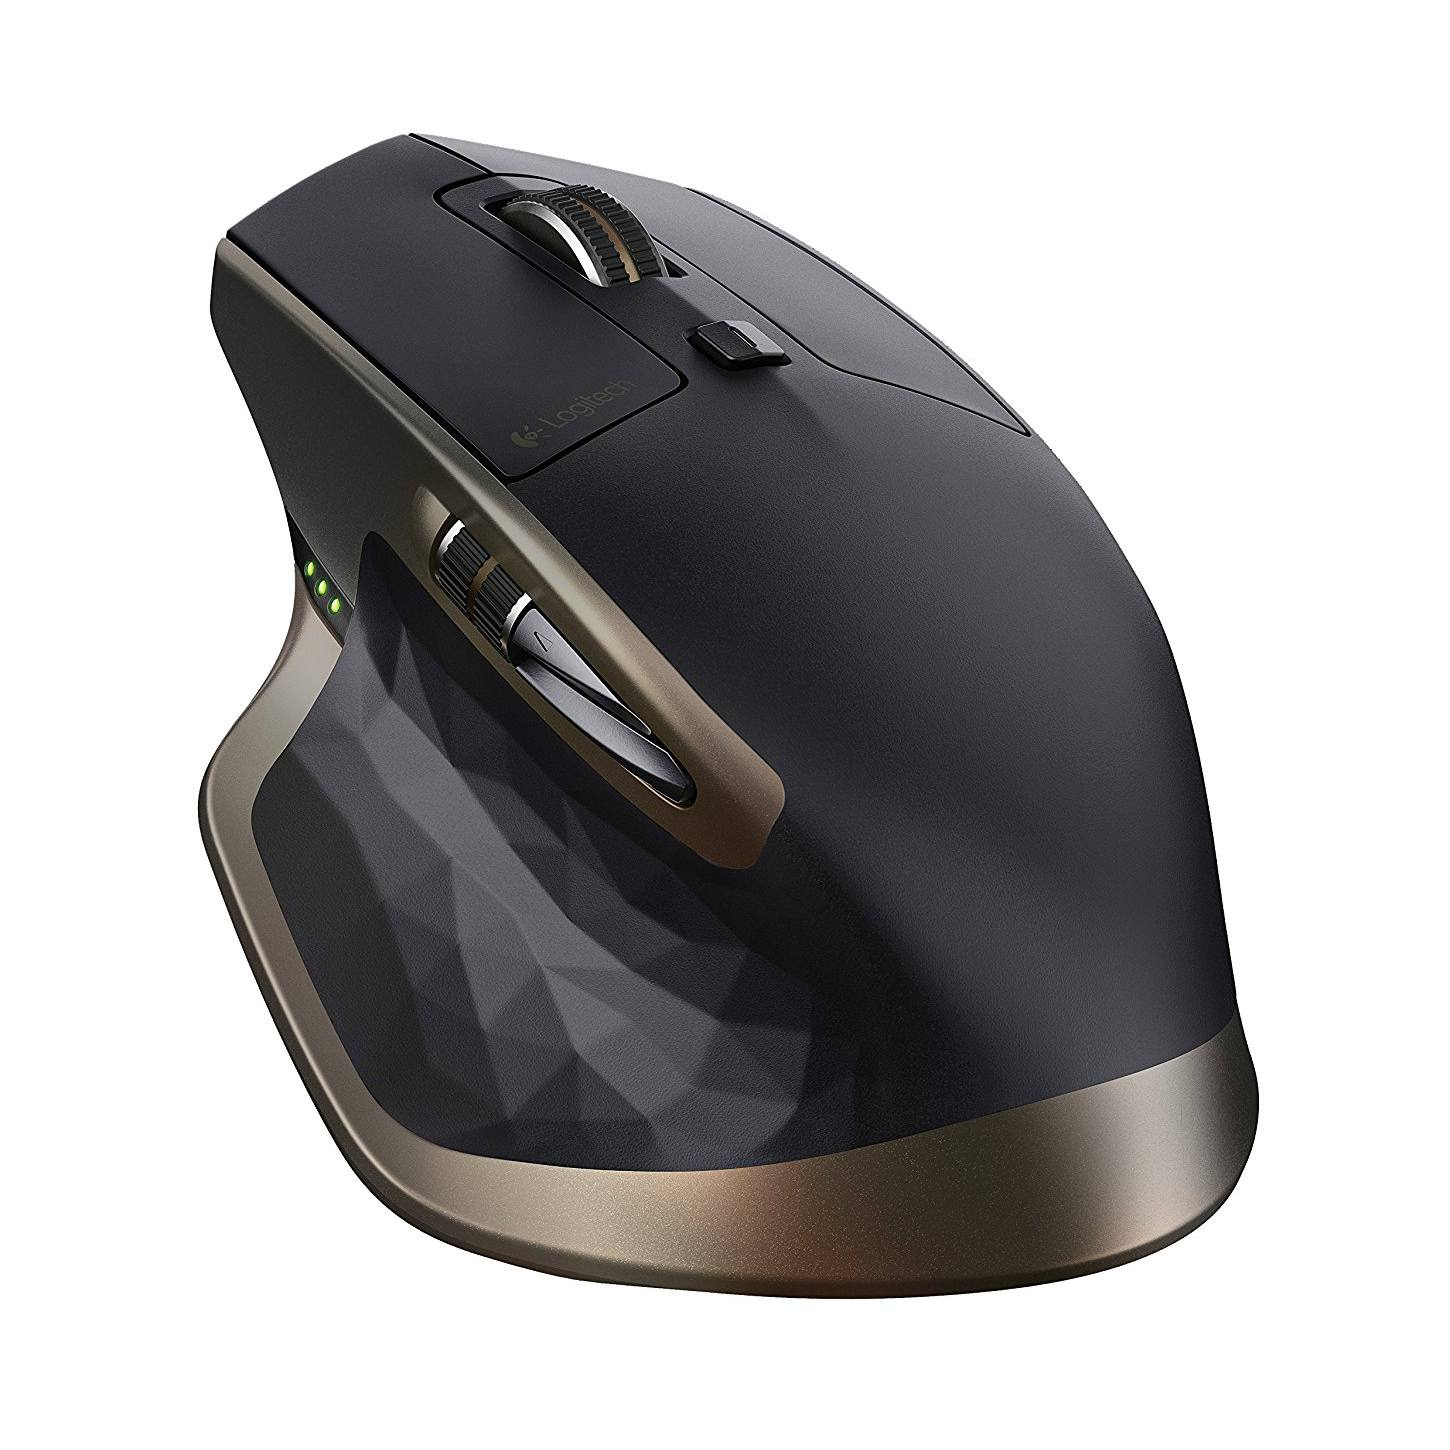 The 8 Best Ergonomic Mice of 2019